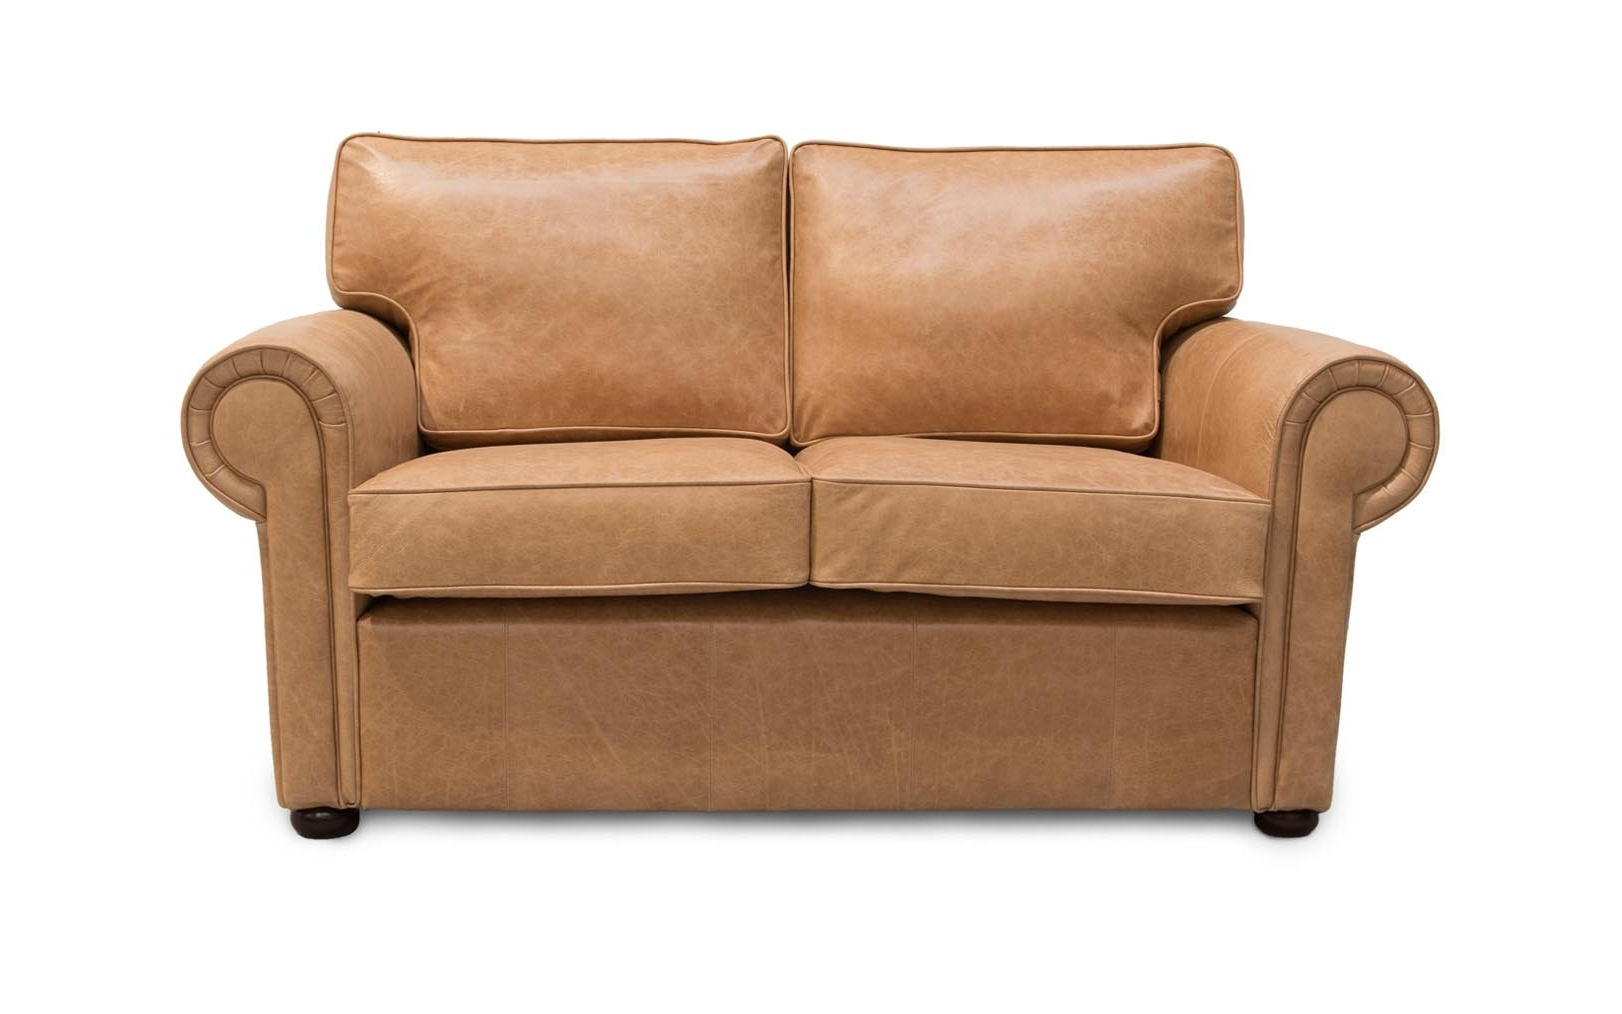 Most Current Clare Traditional Scroll Arm Leather Sofas – Uk Made To Order In Throughout Aniline Leather Sofas (View 13 of 15)